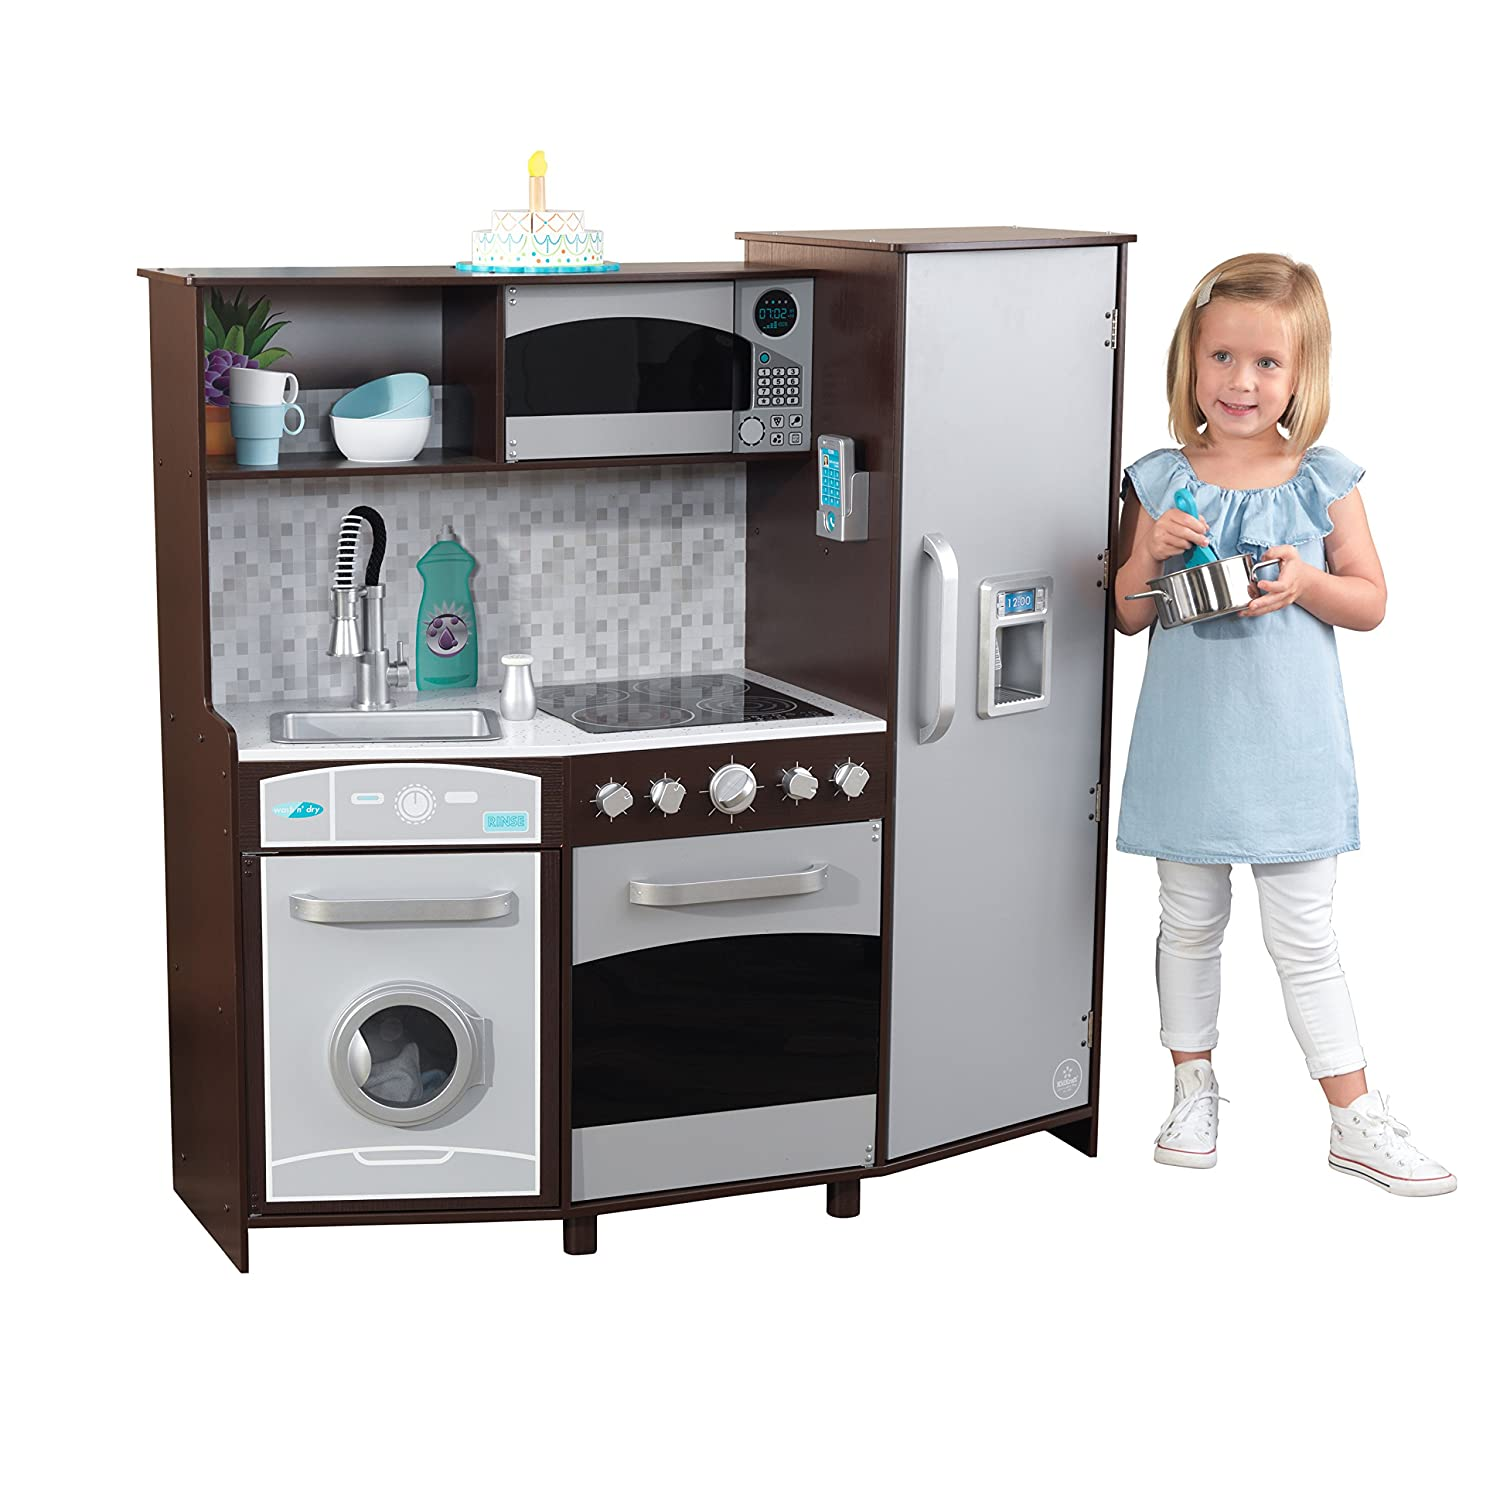 KidKraft Large Play Kitchen with Lights & Sounds - Espresso